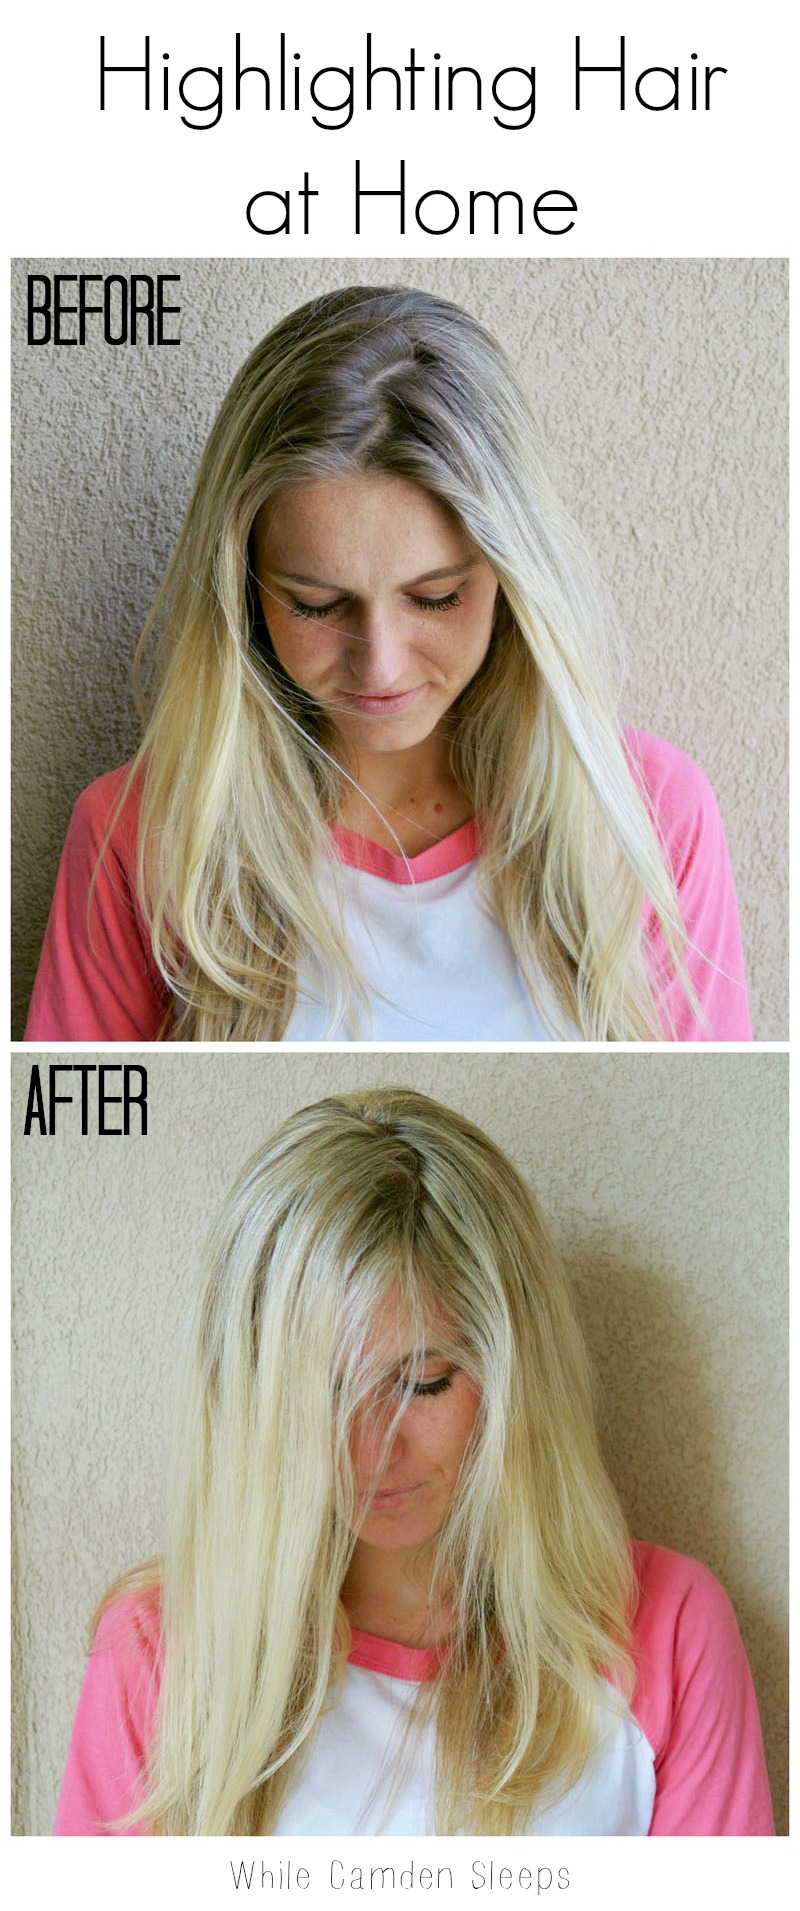 Refashioninghair highlighting hair at home tutorial on how to highlight hair at home using stuff from sallys or amazon theres solutioingenieria Choice Image